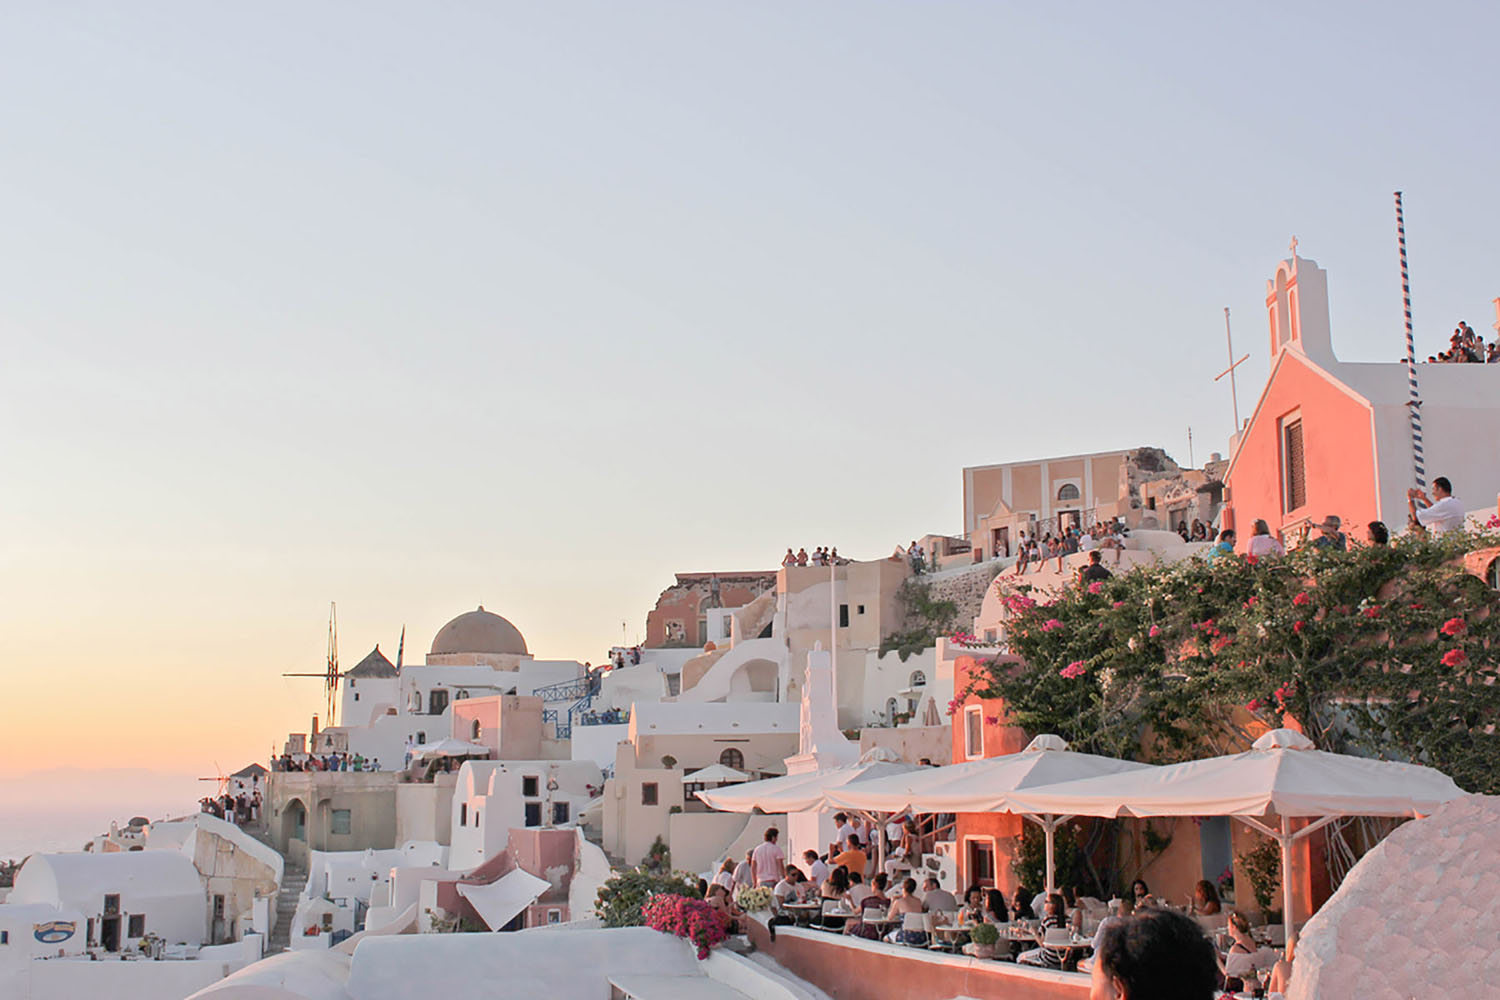 Santorini is considered one of the most photographed Greece islands and for good reason.